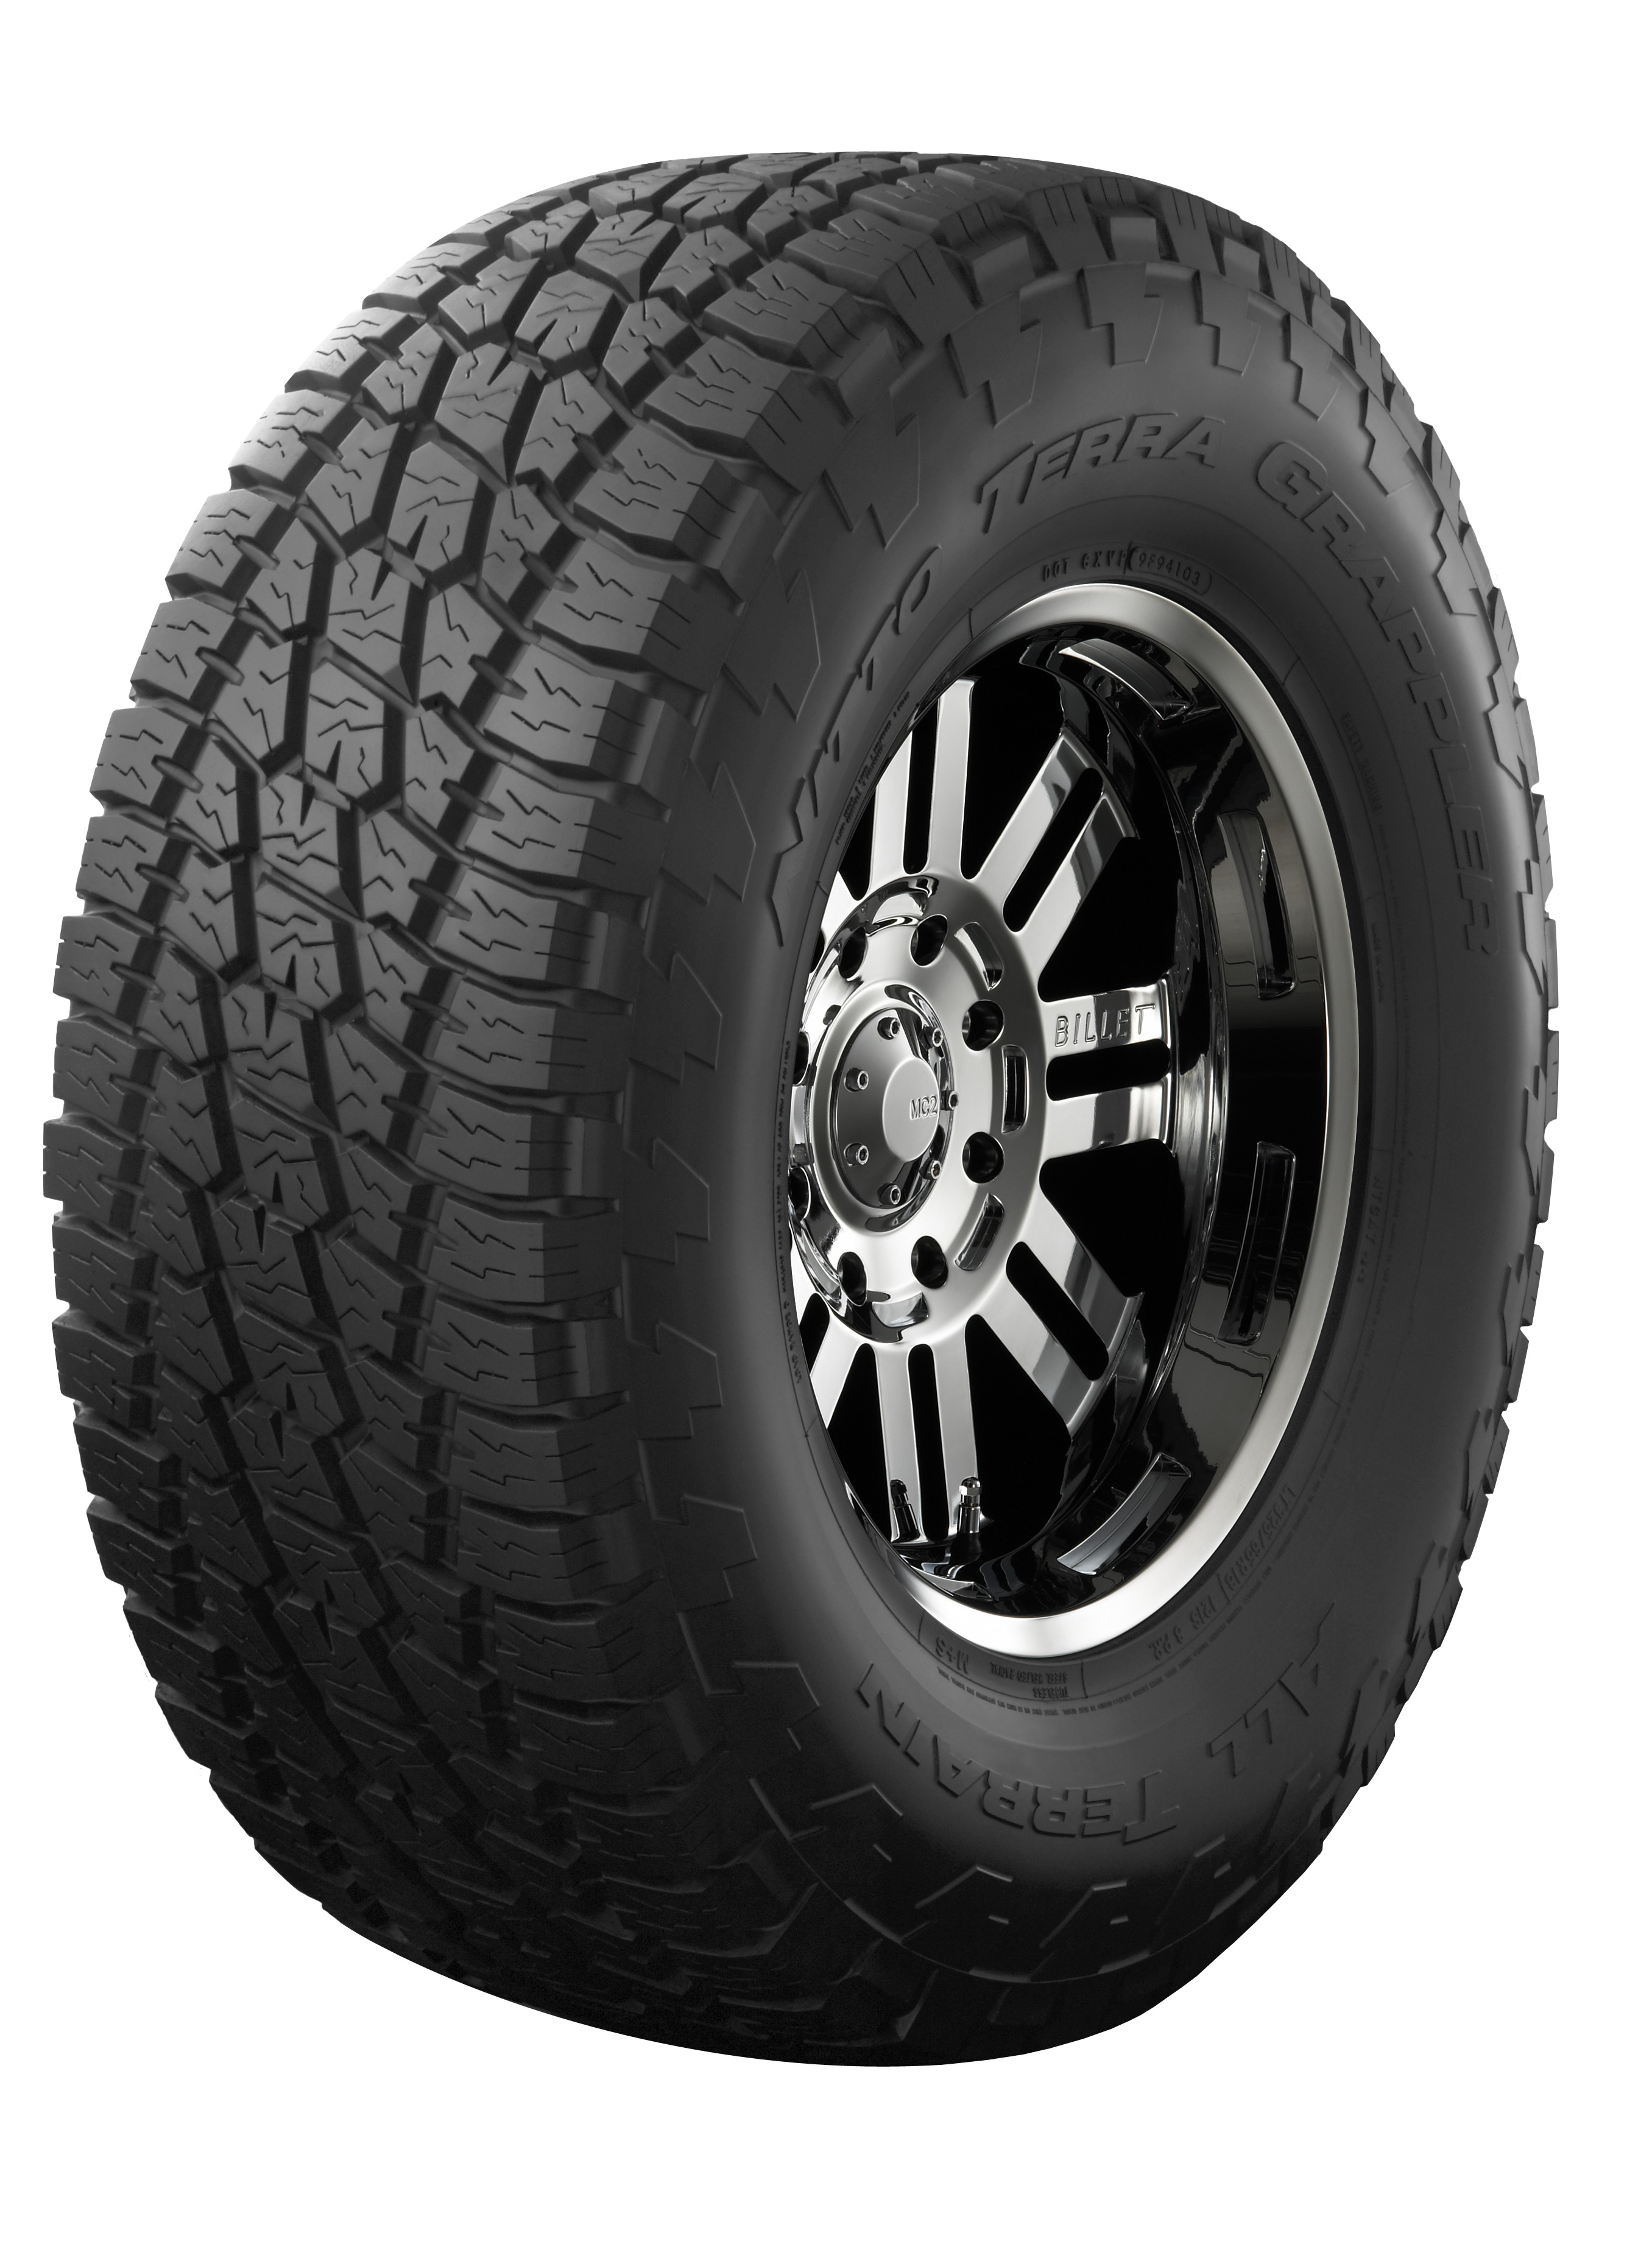 Best One Tire >> Whats the Difference Between Mud Terrain and All Terrain Tires? - Kal Tire